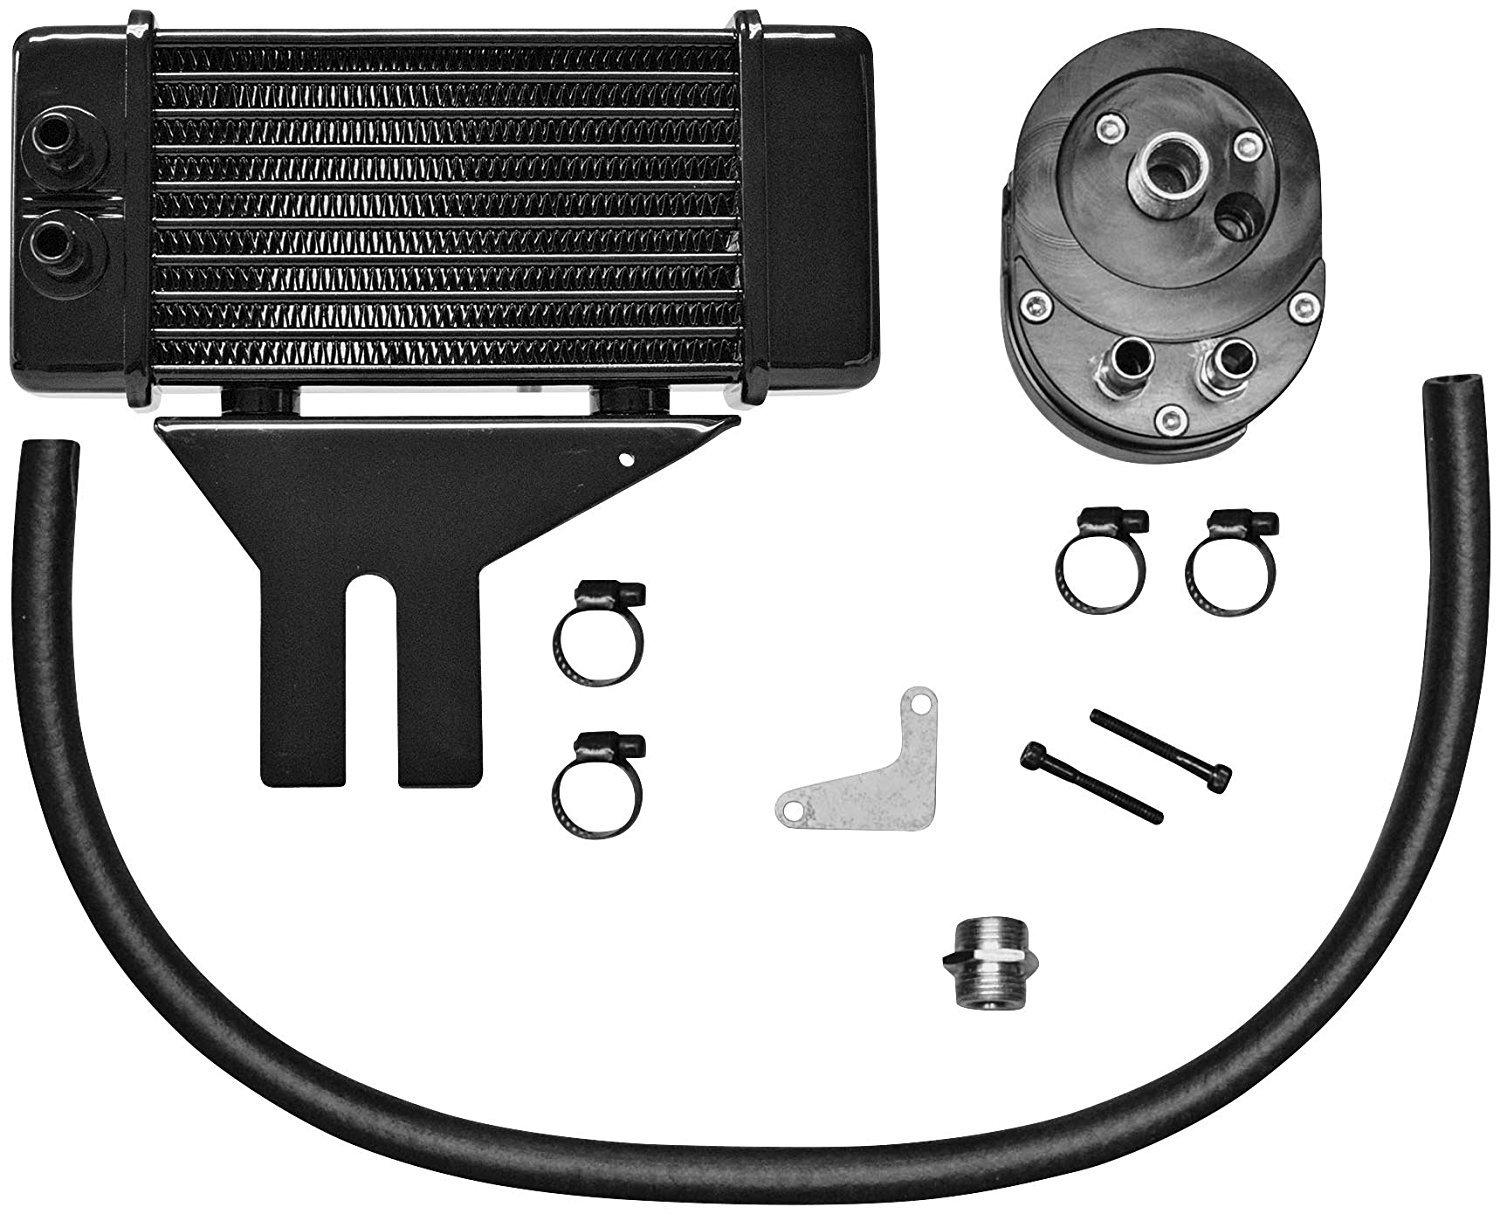 1. Jagg Oil Coolers Horizontal Black 750-2500